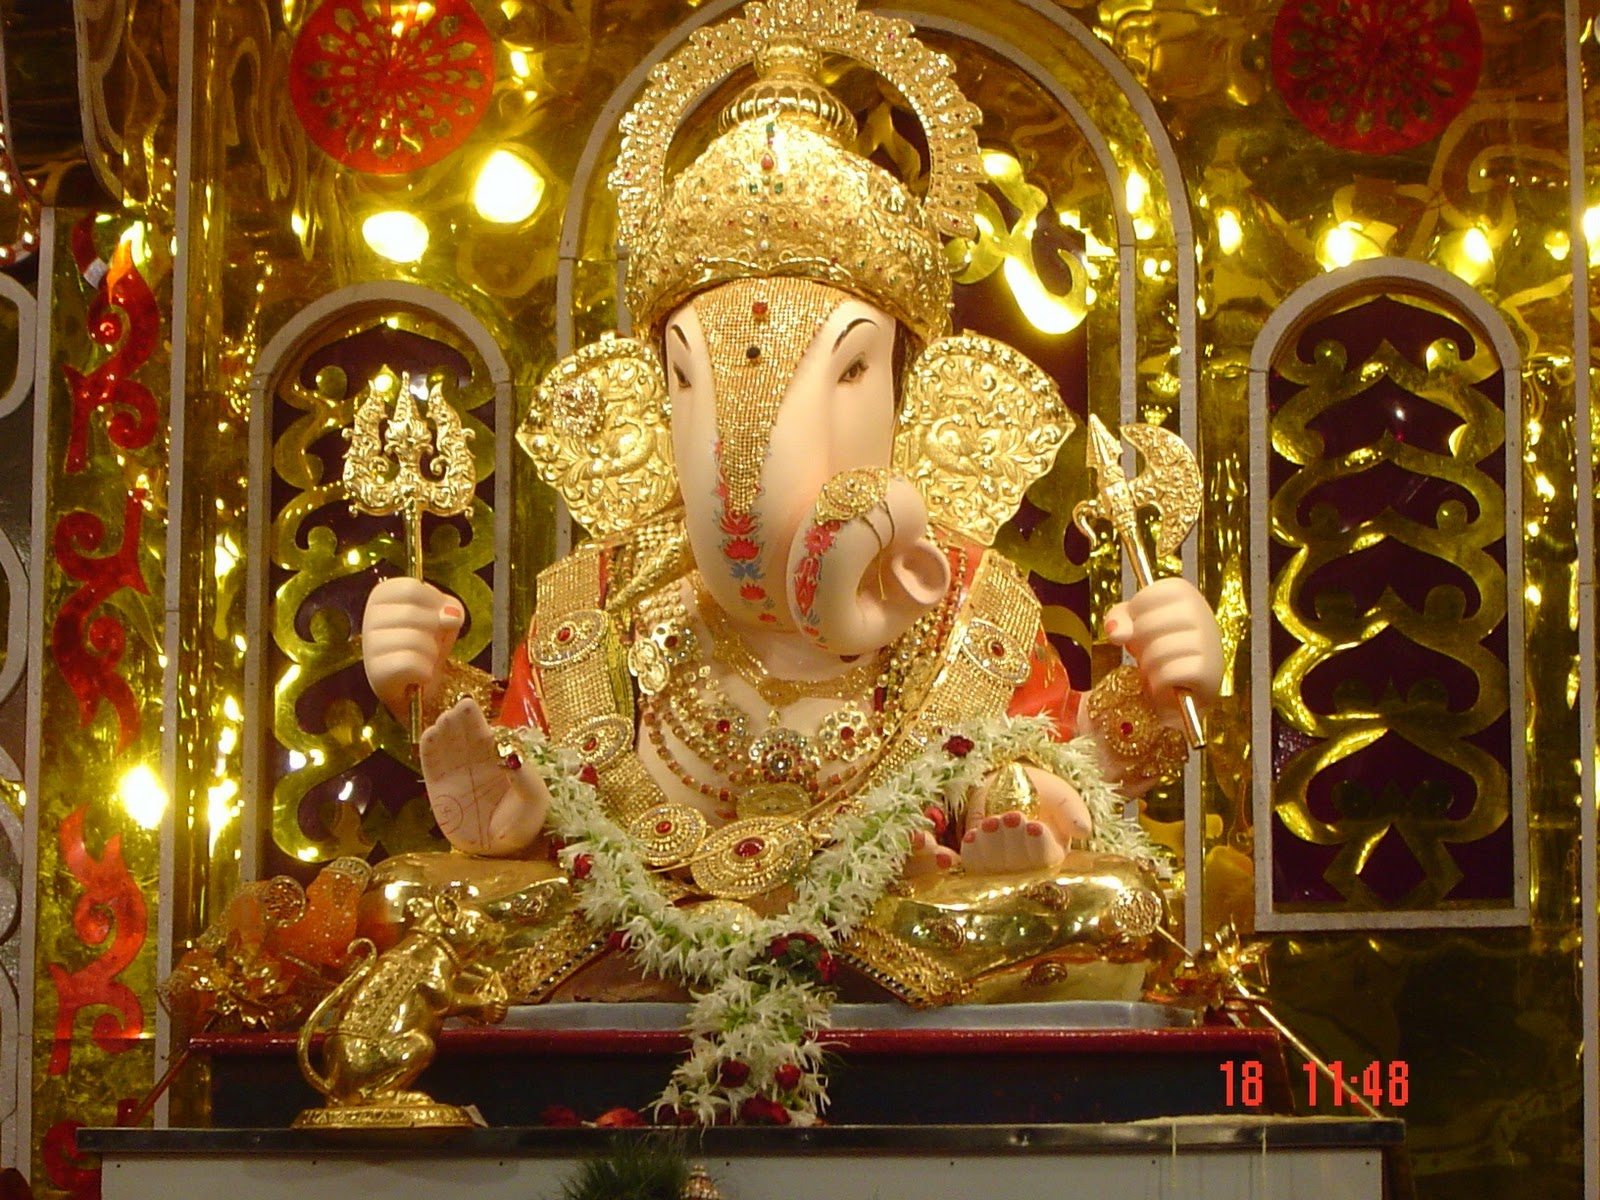 Hd Wallpaper Of Ganpati Bappa